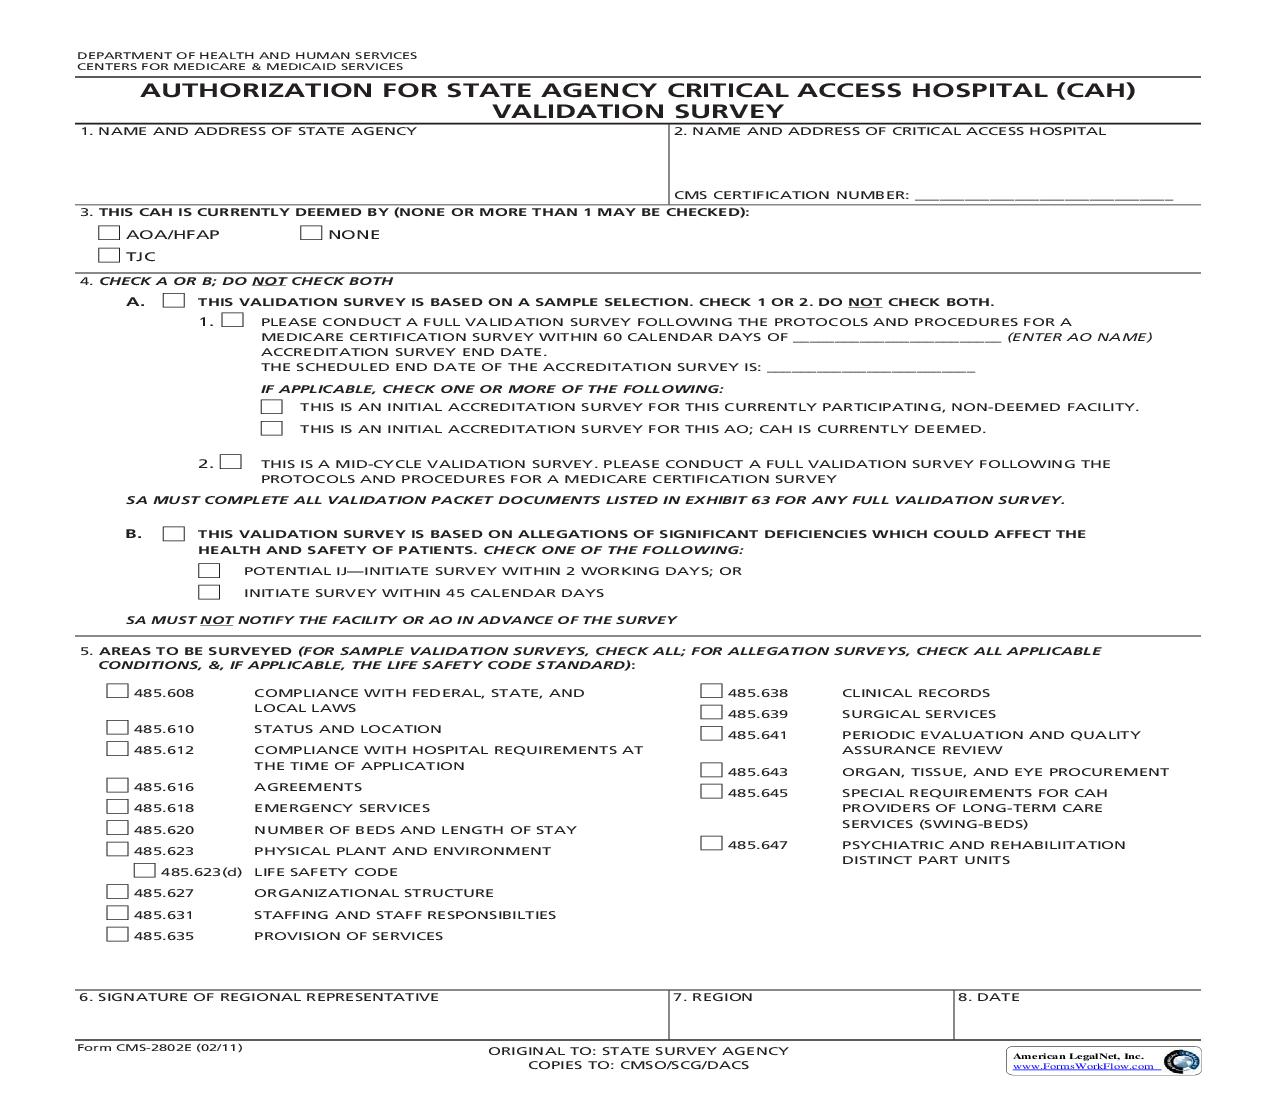 For Validation Of Accreditation For Critical Access Hospital Survey